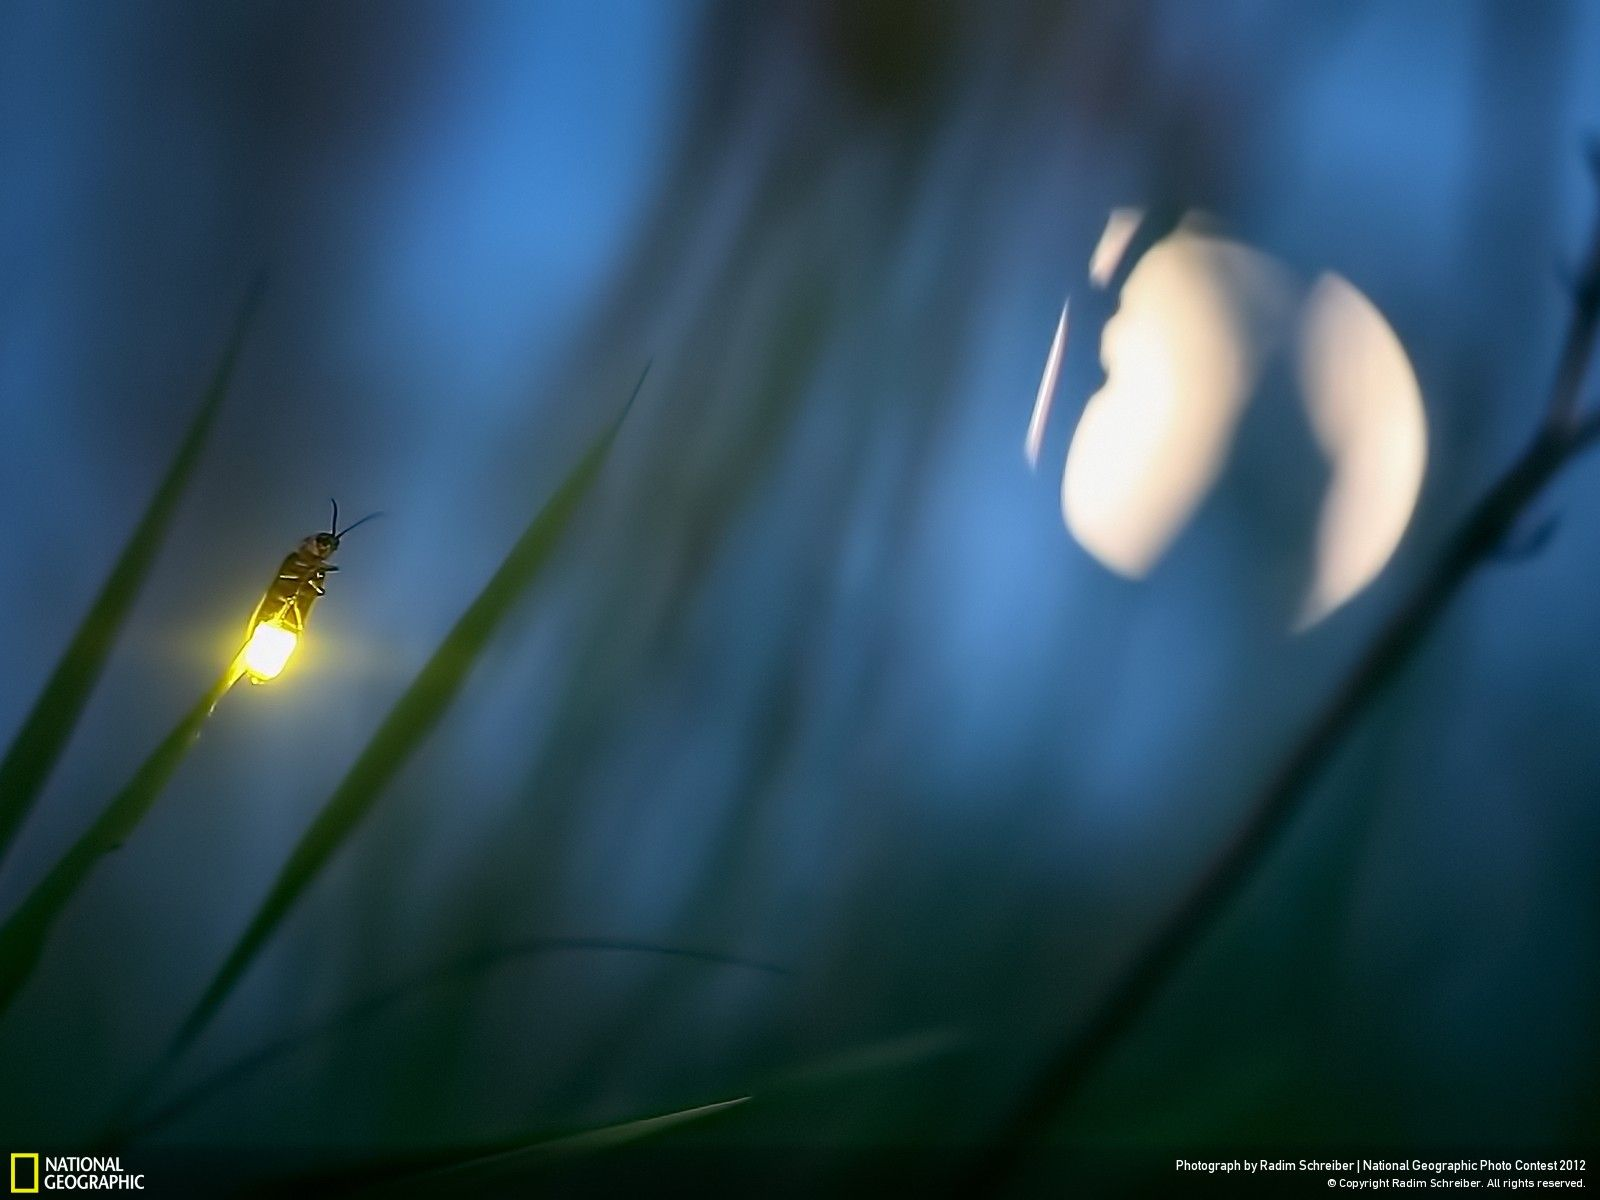 Nature - Week 13 Gallery - National Geographic Photo Contest 2012 ... for Firefly Insect Wallpaper  110zmd